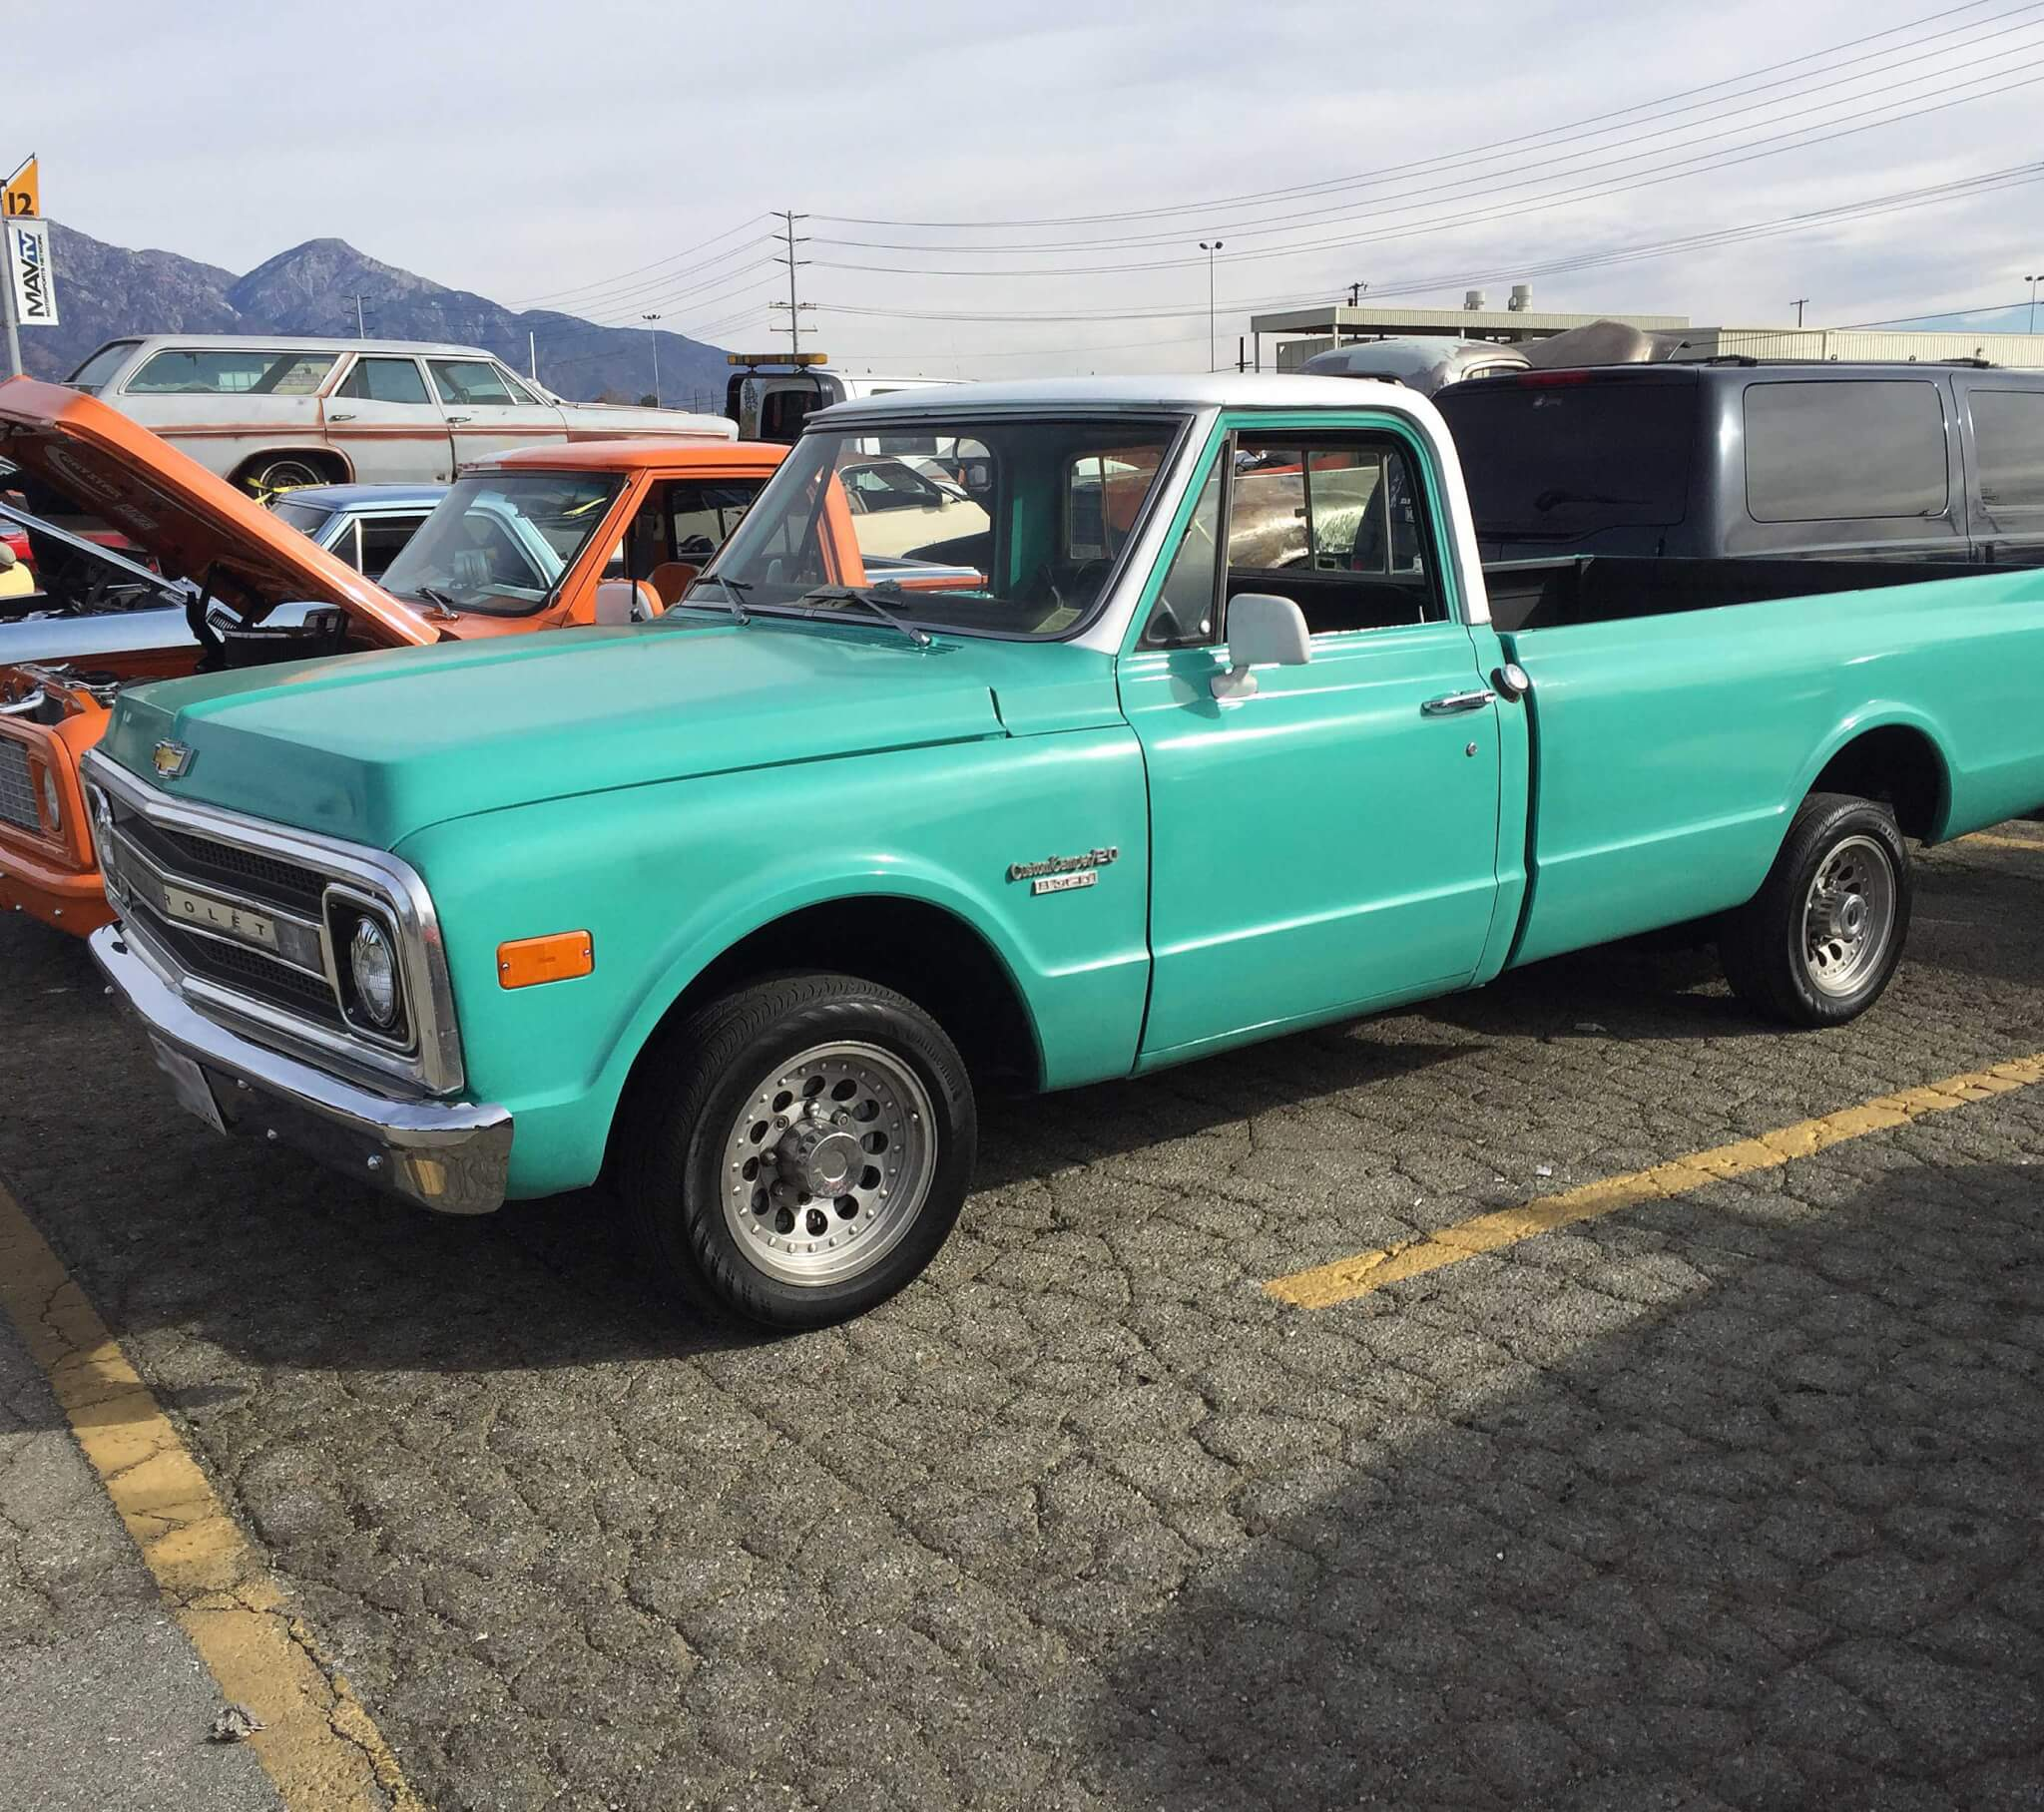 1969 chevy c20 dylan g lmc truck life 1969 Chevy Paint Codes 1969 chevy c20 dylan g